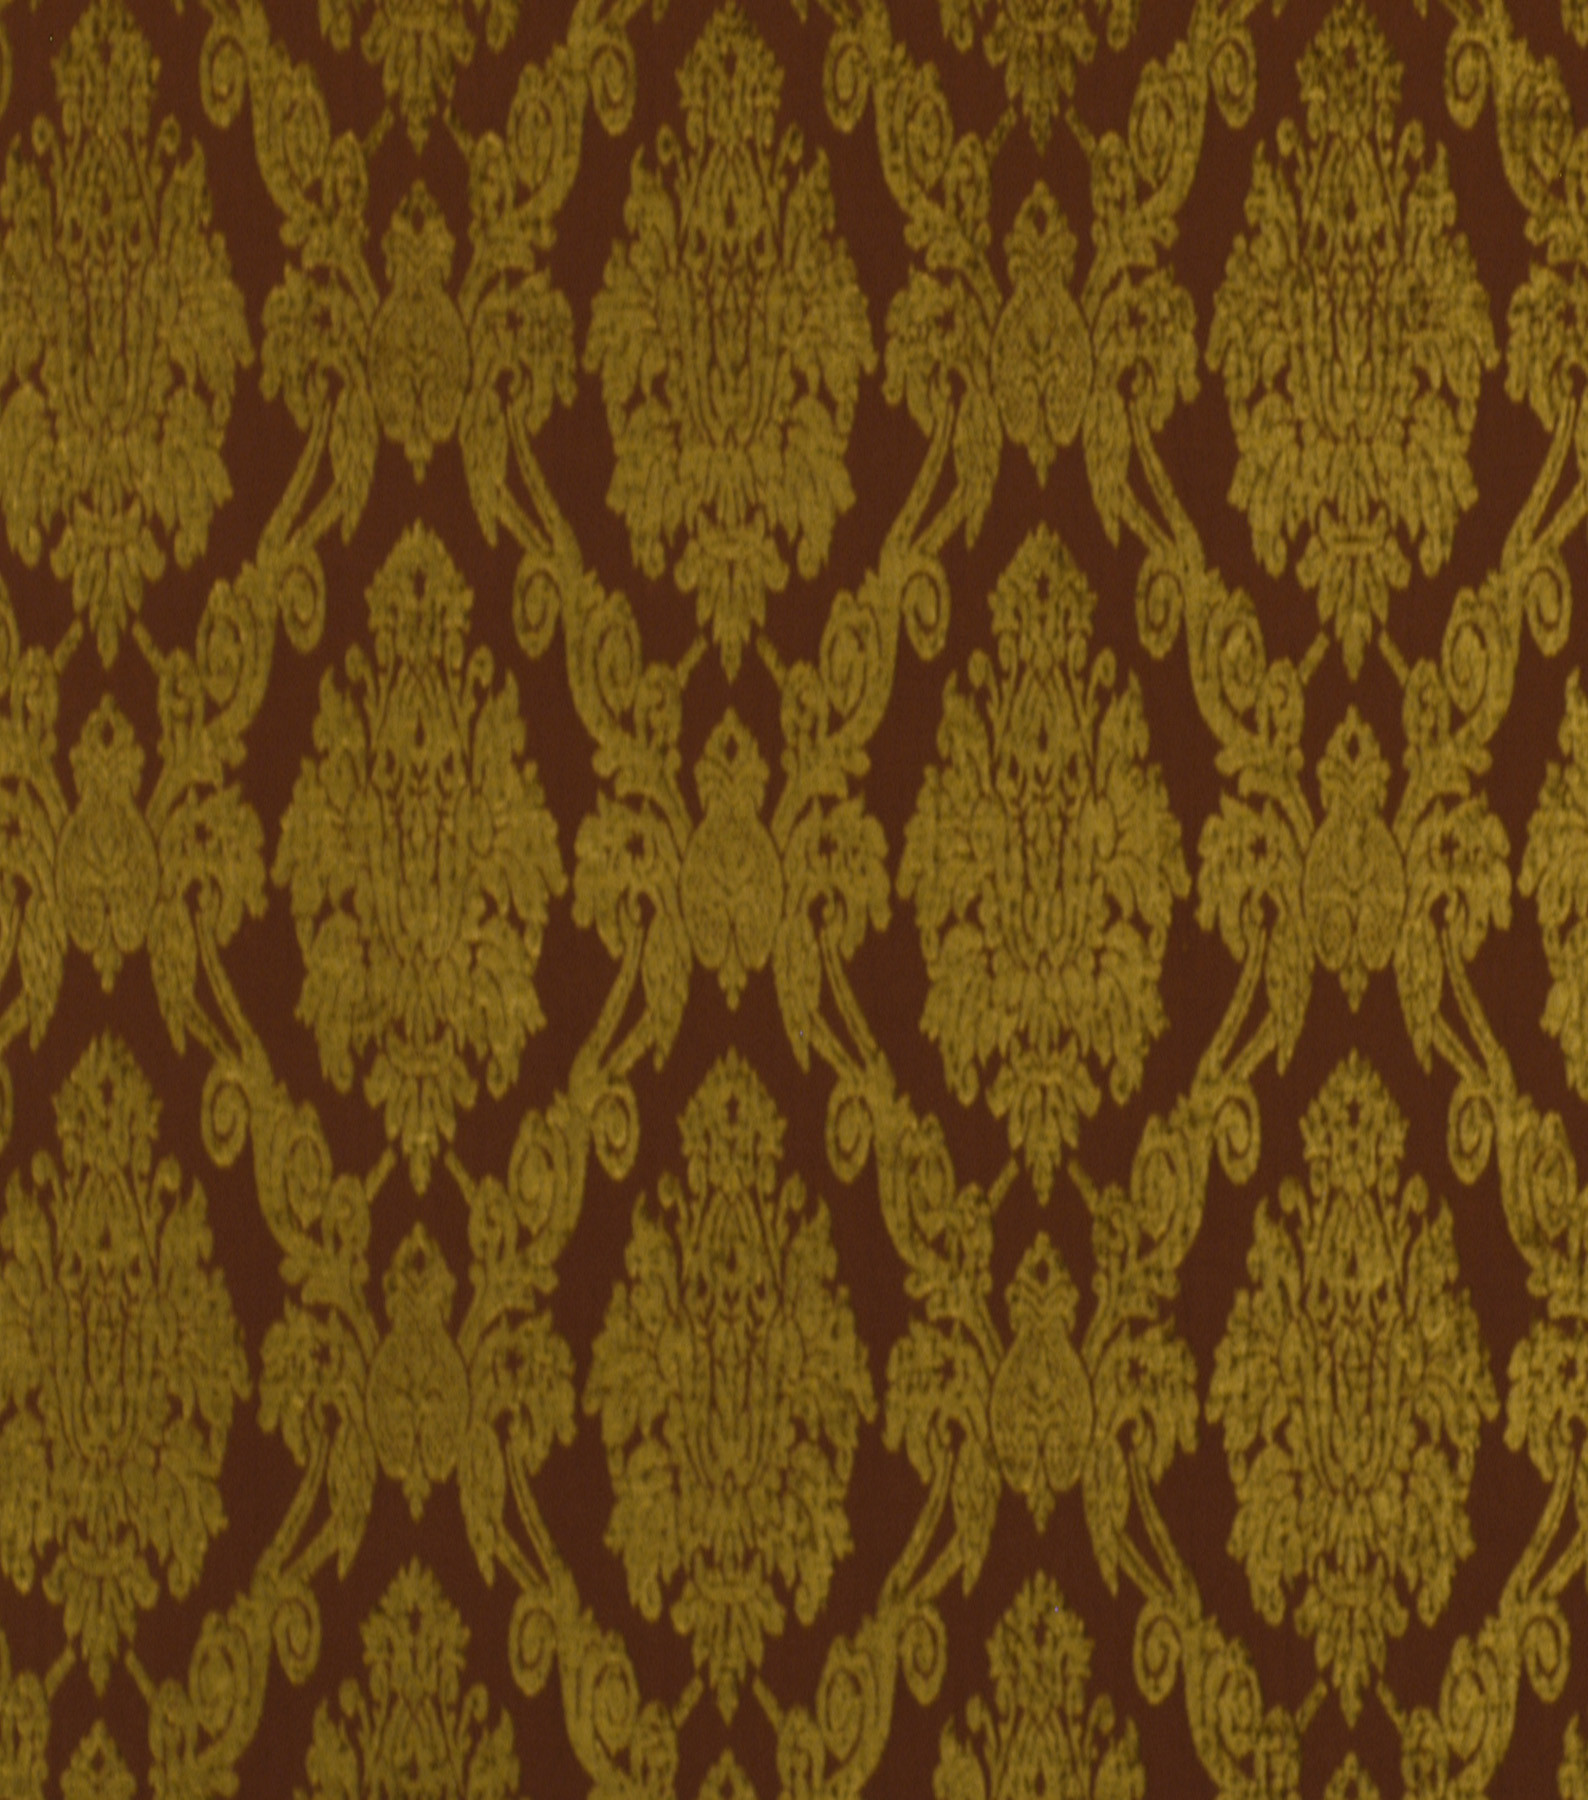 Home Decor 8\u0022x8\u0022 Fabric Swatch-Robert Allen Royal Damask Henna